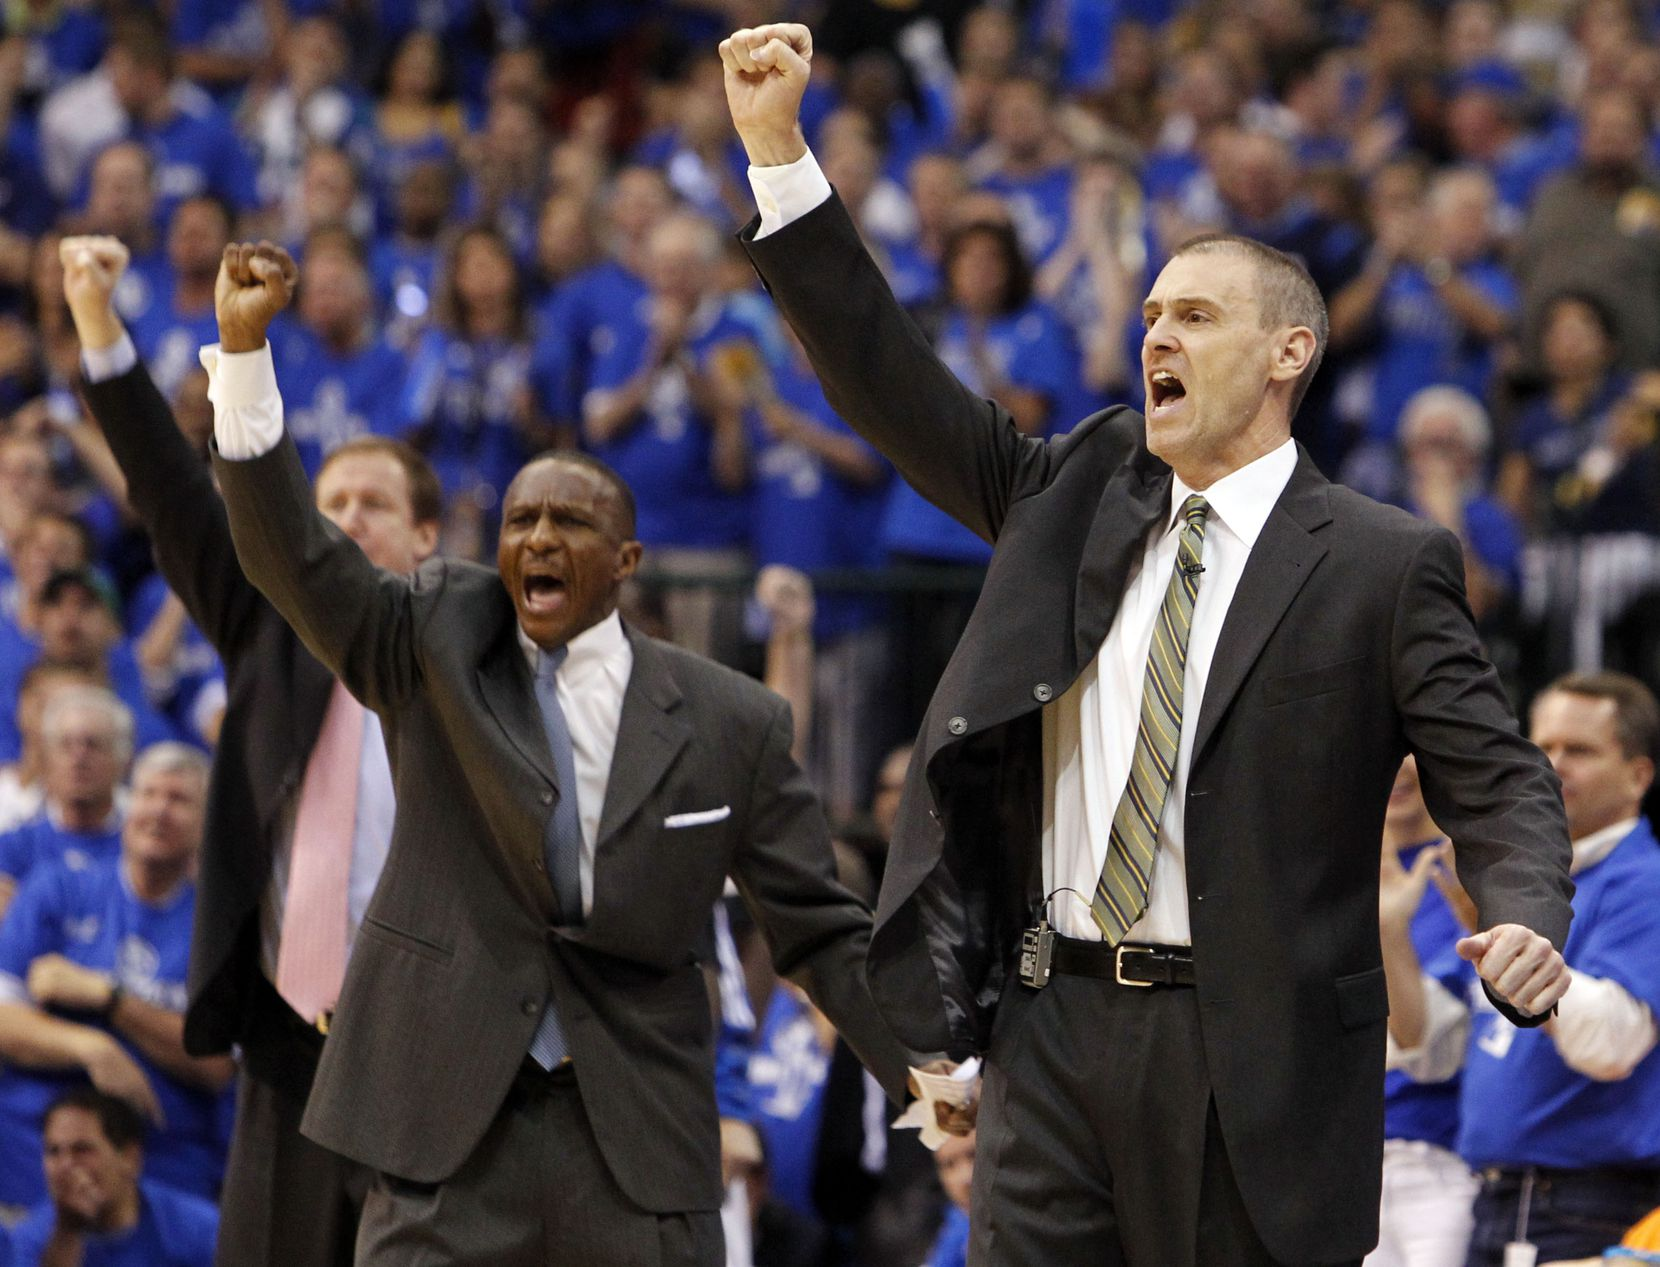 Dallas Mavericks head coach Rick Carlisle, and assistant coaches Dwane Casey (center) and Terry Stotts (far left) simultaneously use a hand signal to tell the Mavericks players on the floor to switch to zone defense, during the second quarter of play in game five of the NBA Finals against the Miami Heat at American Airlines Center Thursday, June 9, 2011 in Dallas.